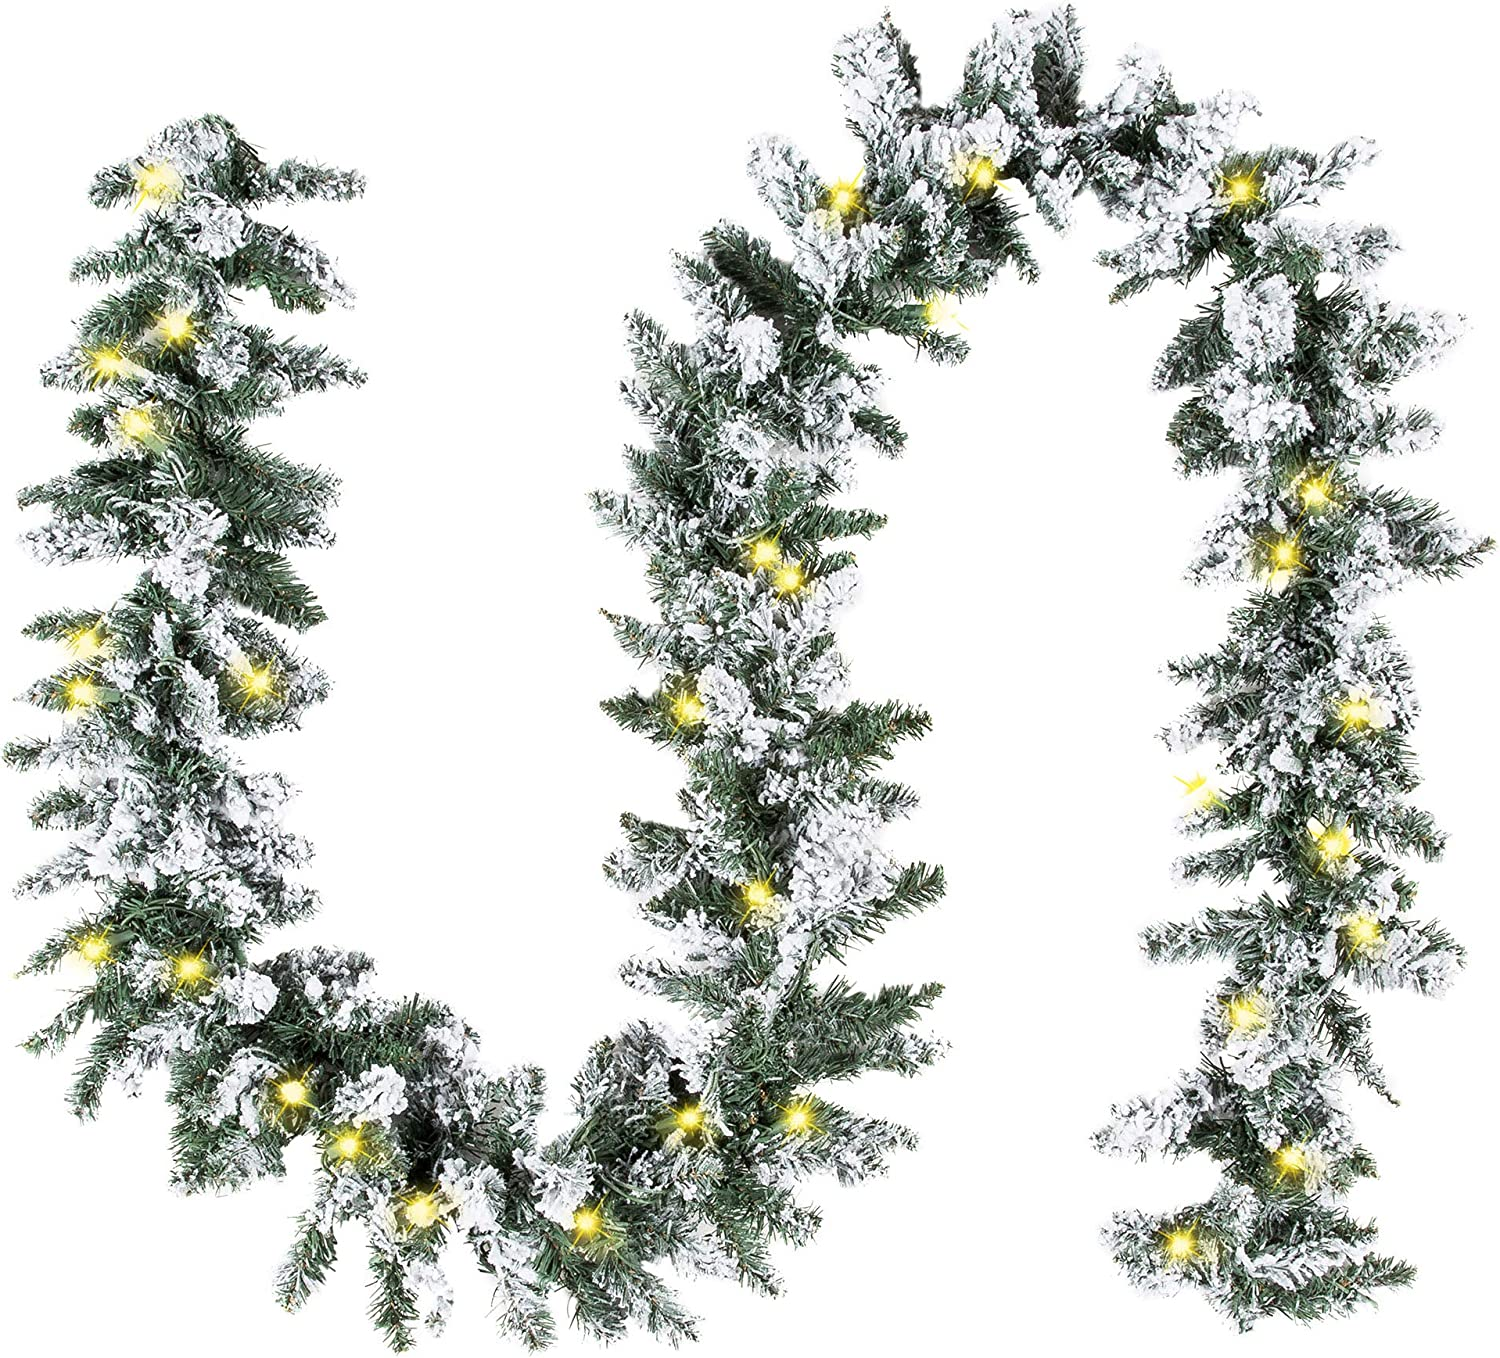 Best Choice Products 9ft Pre-Lit Snow Flocked Artificial Christmas Garland Decoration w/ 100 Clear LED Lights - Green